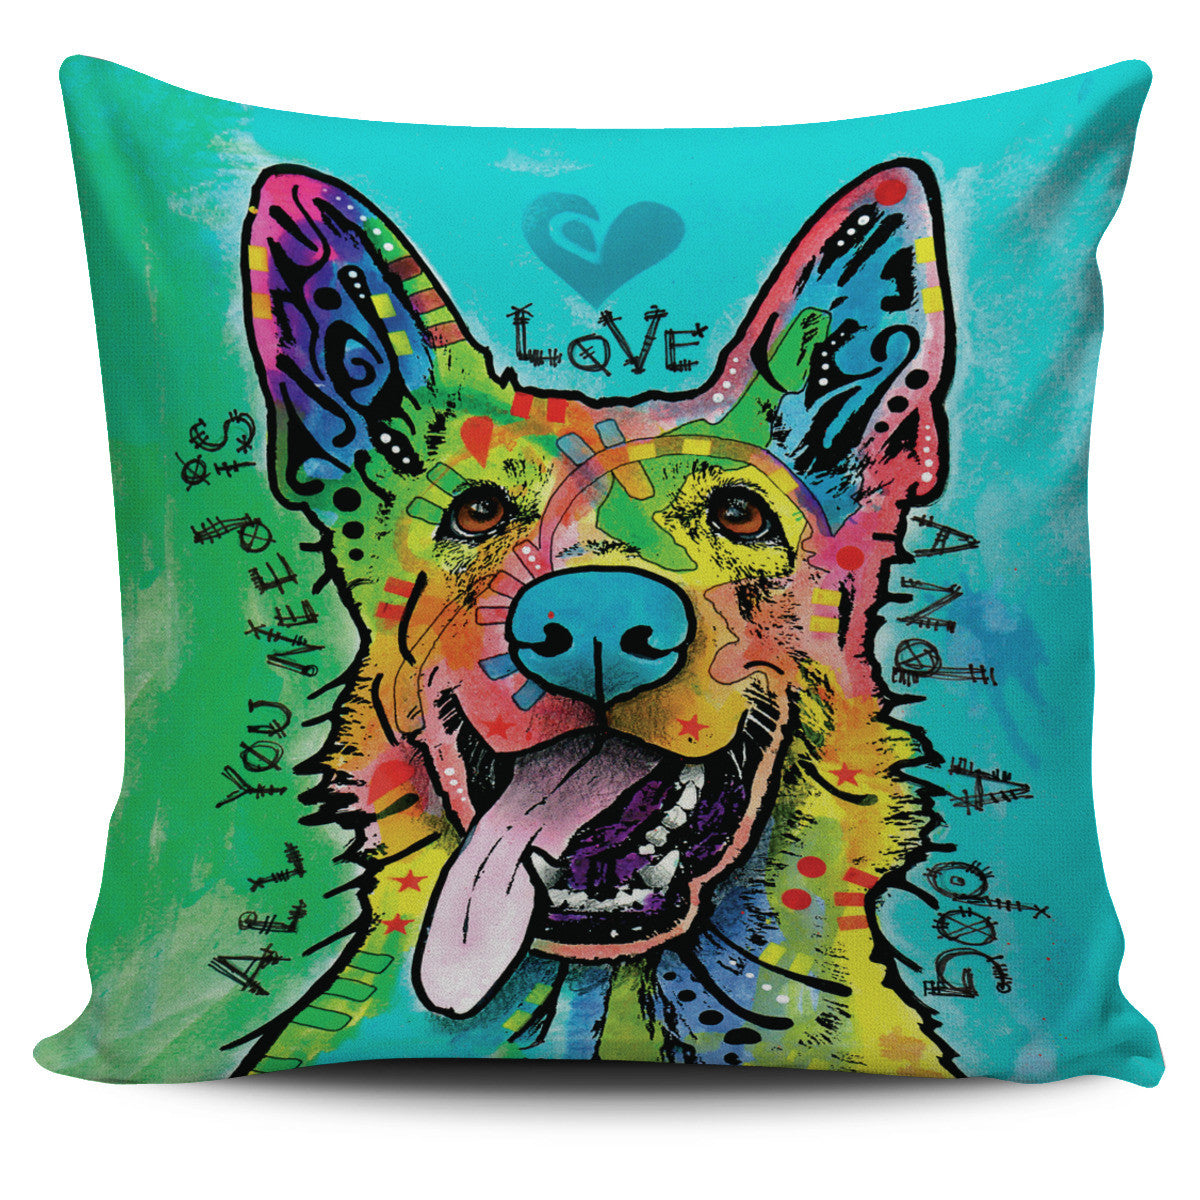 German Shepherd Series Pillow Covers Offer